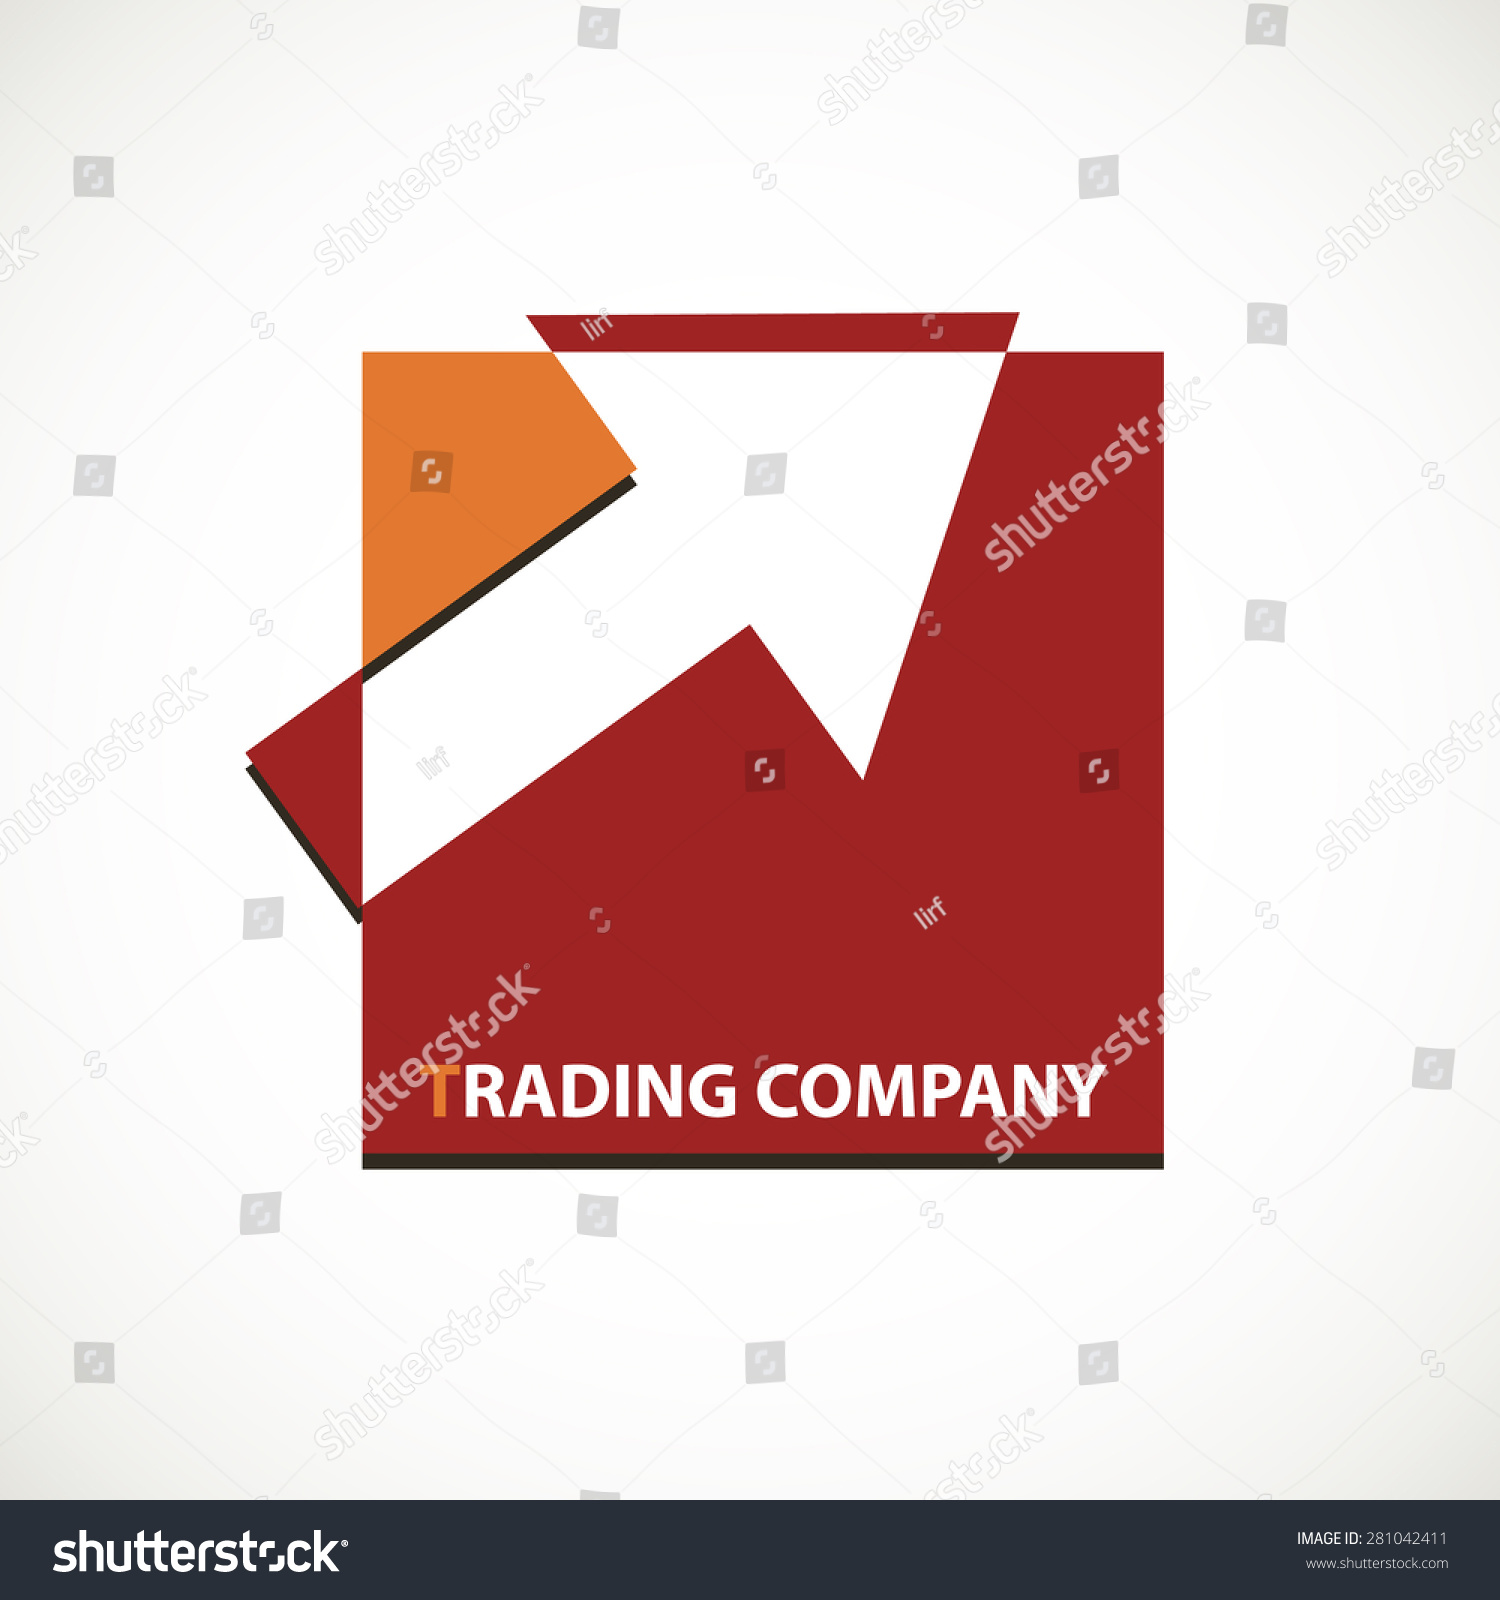 Trading Company Logo With Arrow On Square Concept Icon ...